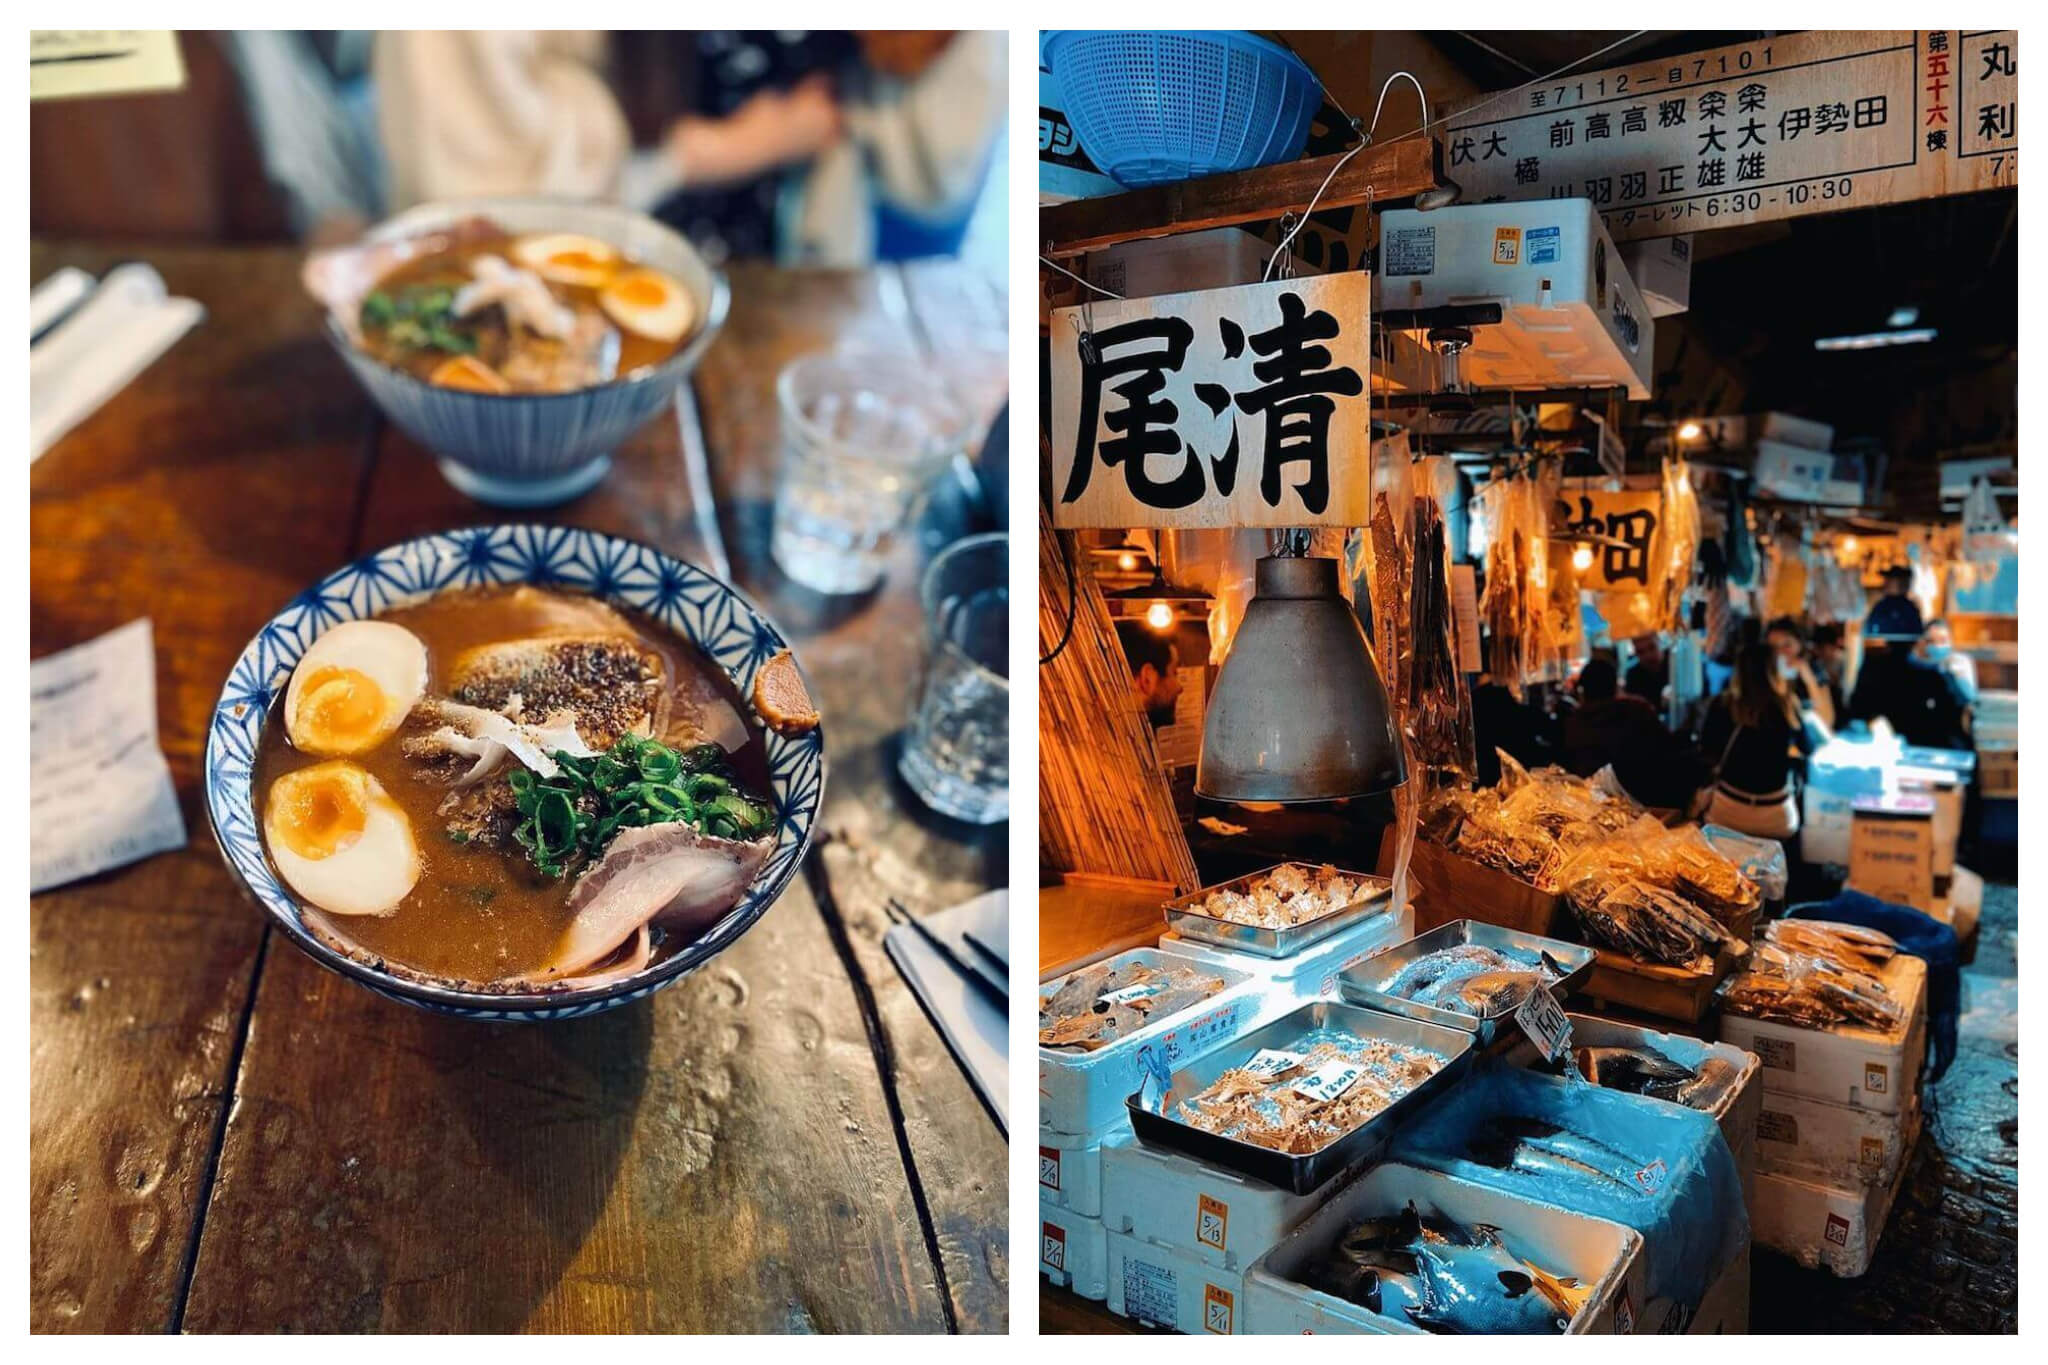 Left: a blue and white bowl filled with ramen soup with two eggs, meat, greens, and spices. Right: Interior of a ramen restaurant. There are several boxes filled with food products and a flag with Japanese lettering on it. There are people seated in the background